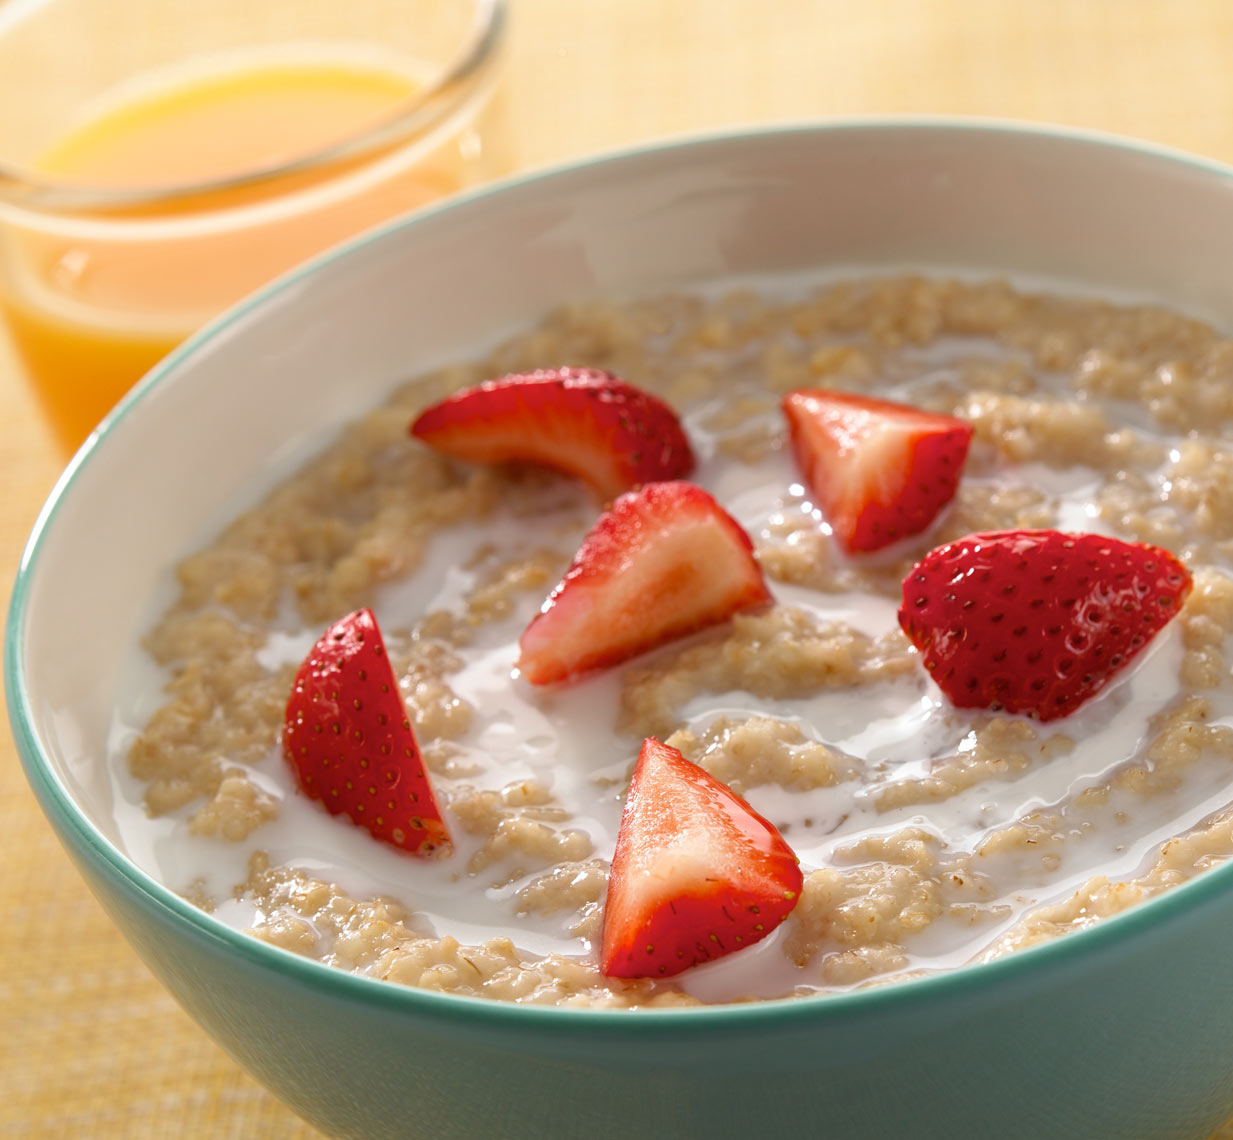 Oatmeal/quartered strawberries/glass of orange juice/food photography